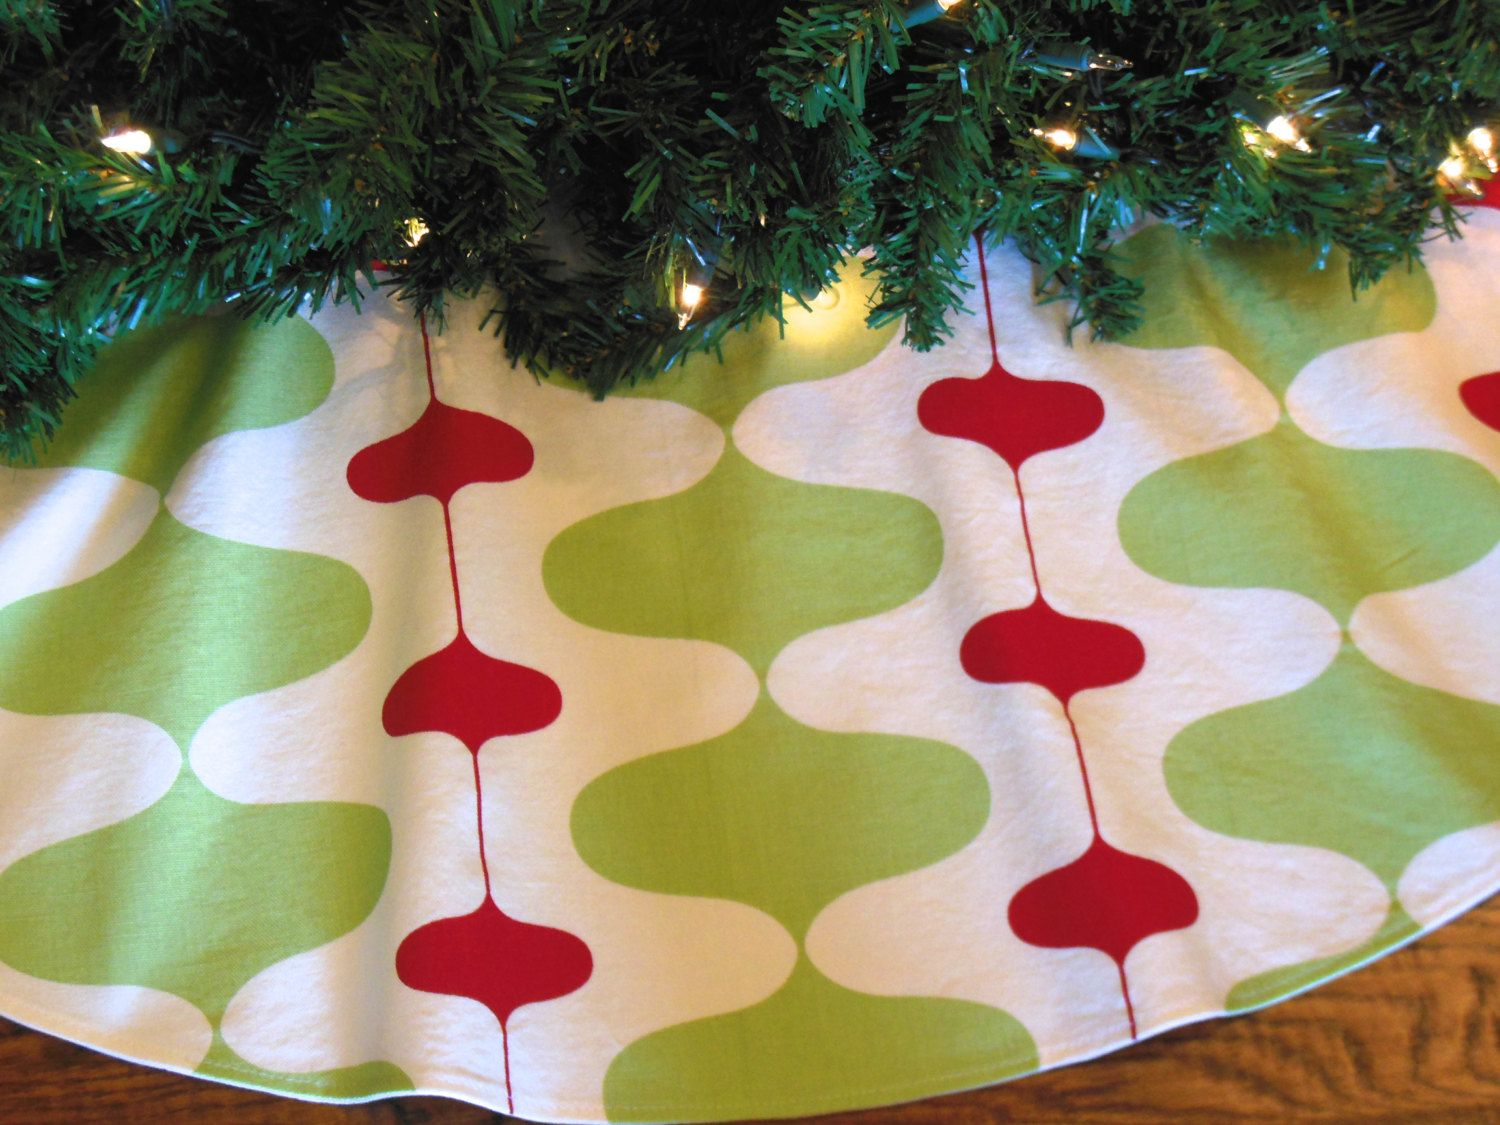 Mid Century Modern Christmas Tree Skirt.48 Or 54 Mid Century Modern Christmas Tree Skirt Retro